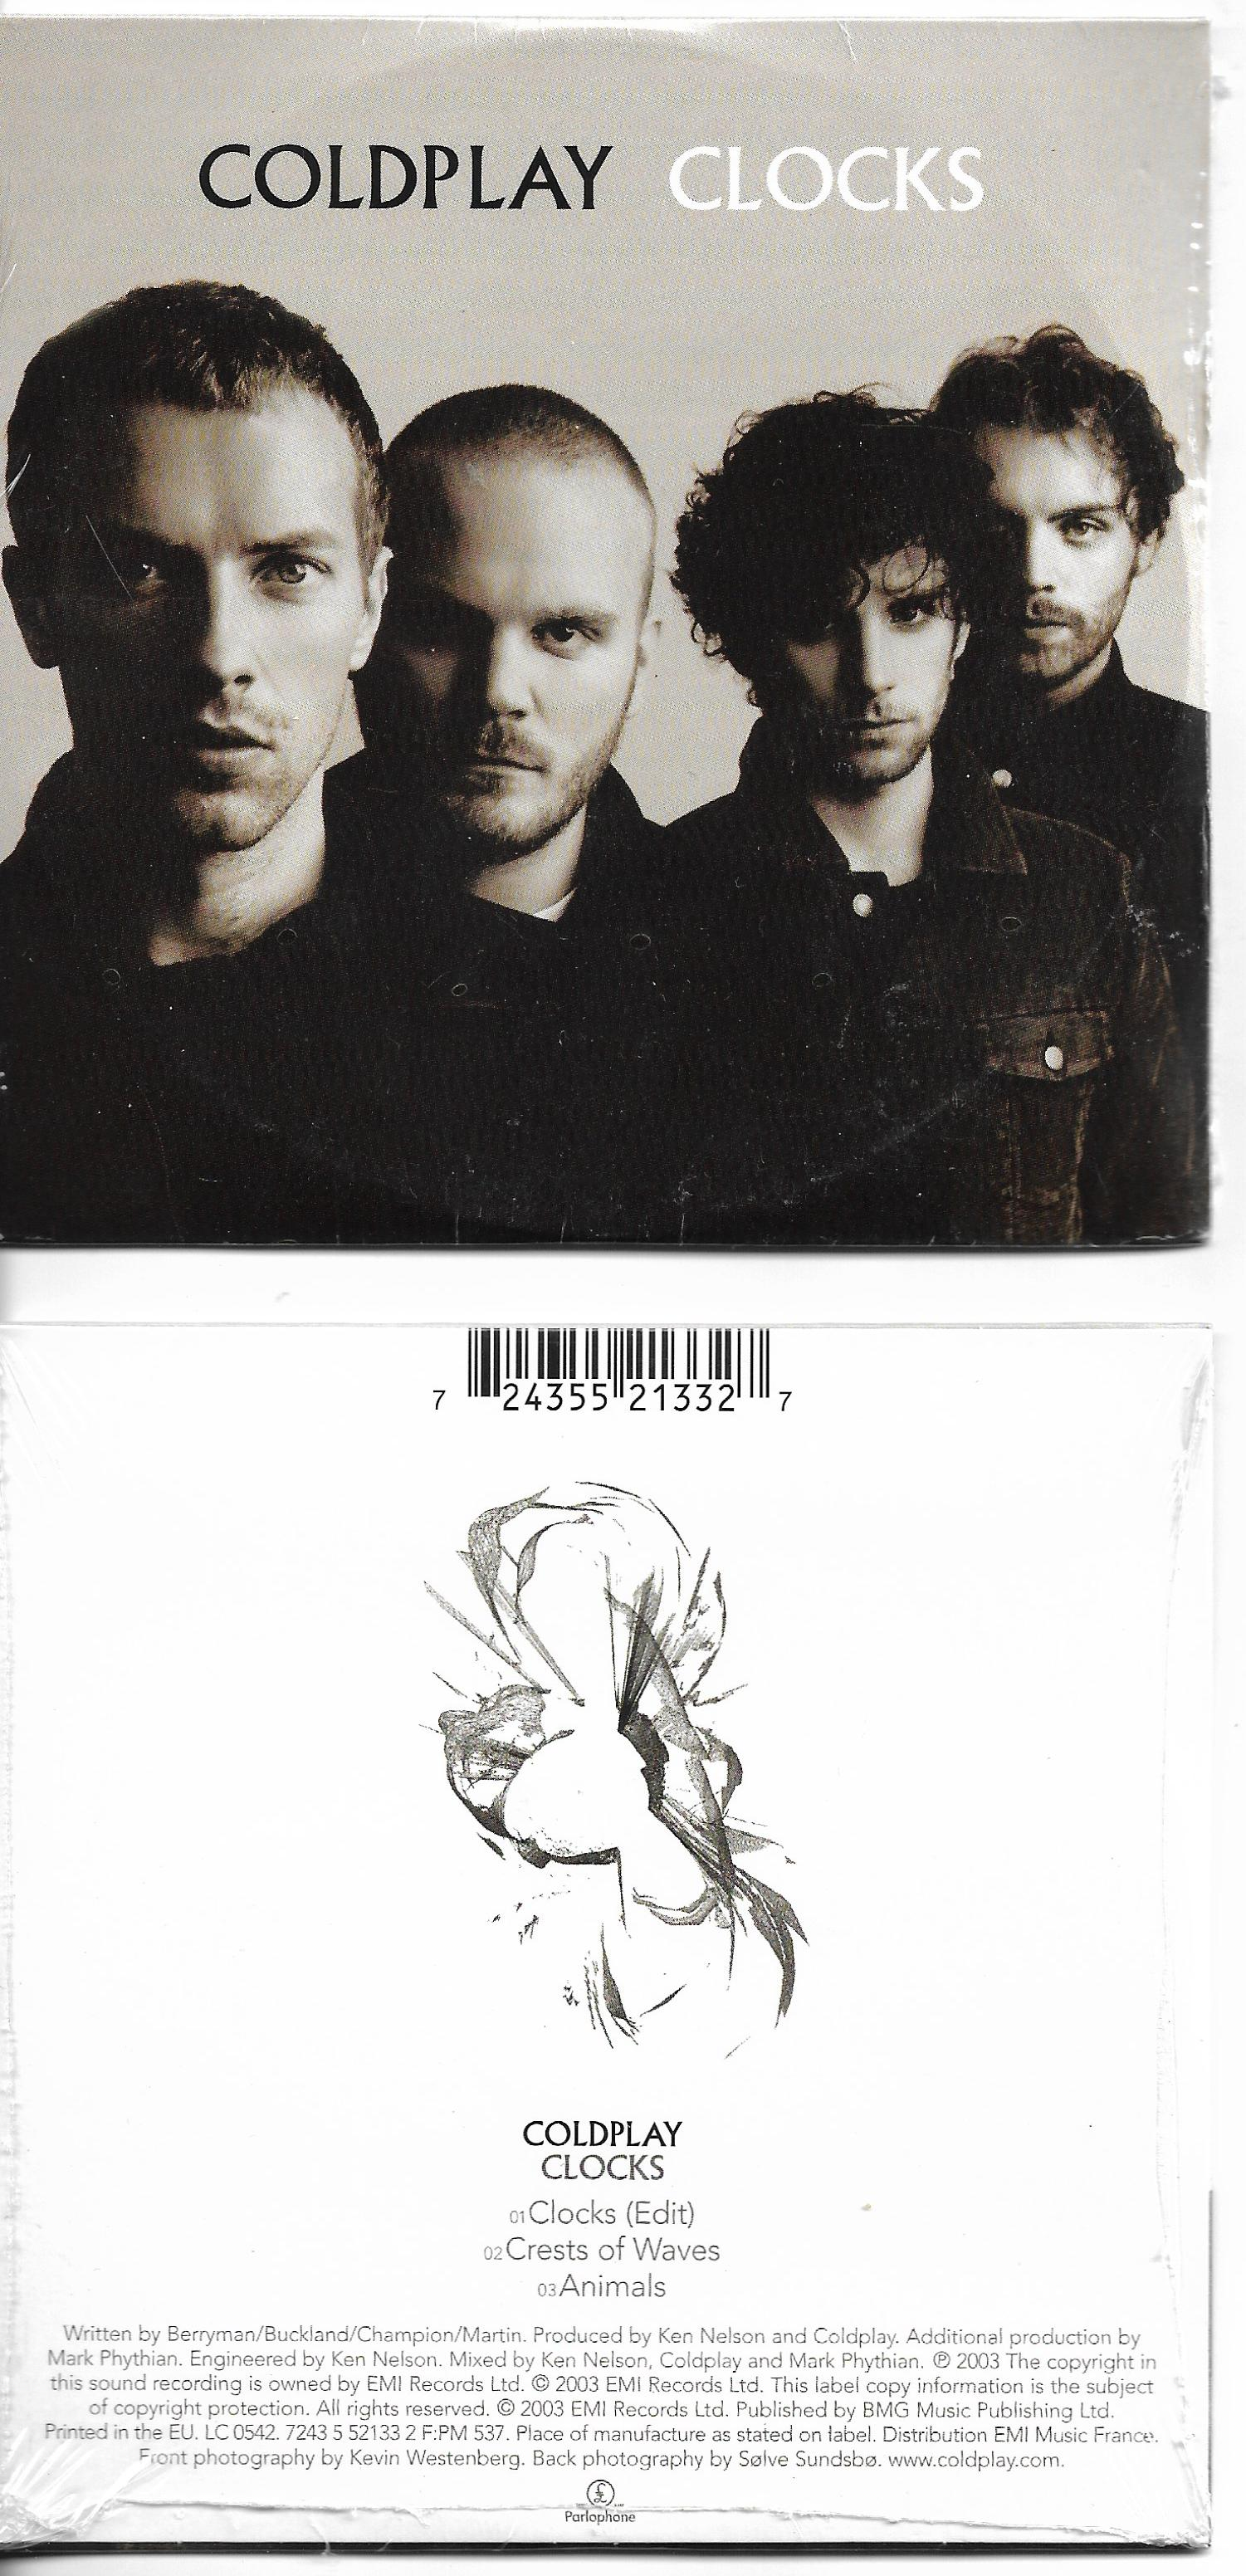 COLDPLAY -  vinyl records and cds